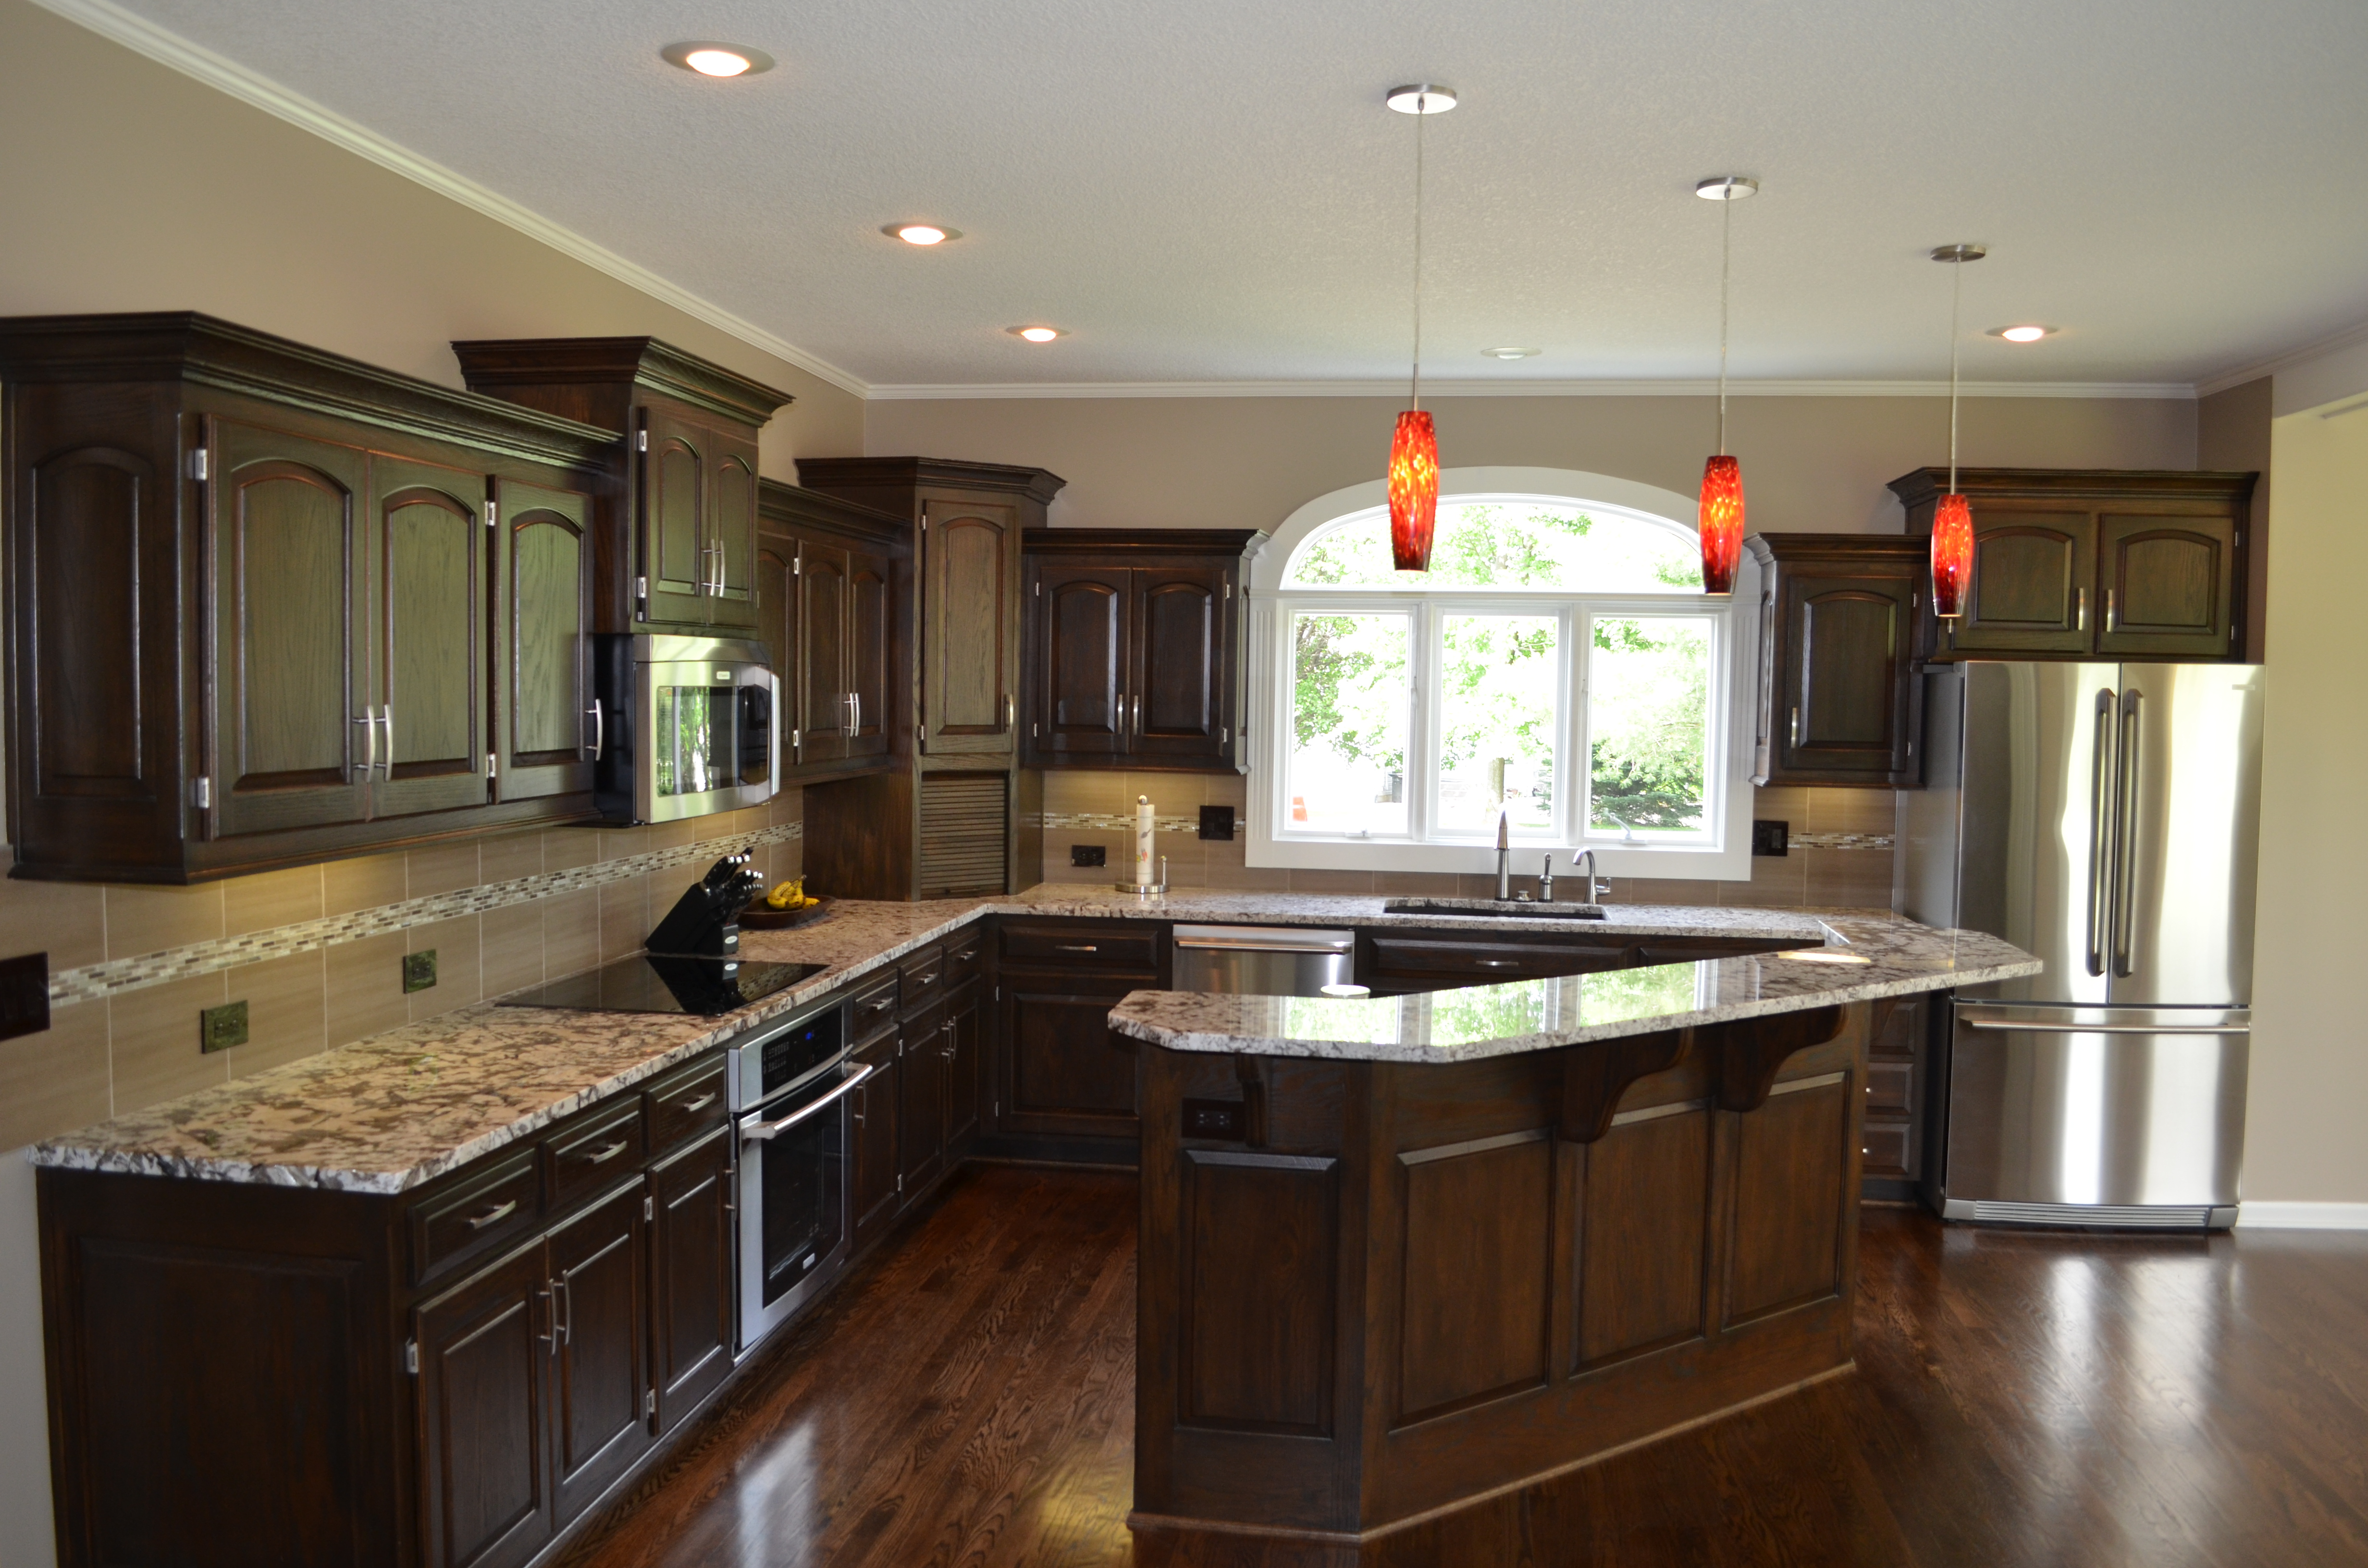 Kitchen remodeling kitchen design kansas cityremodeling for Small kitchen remodeling ideas home renovation